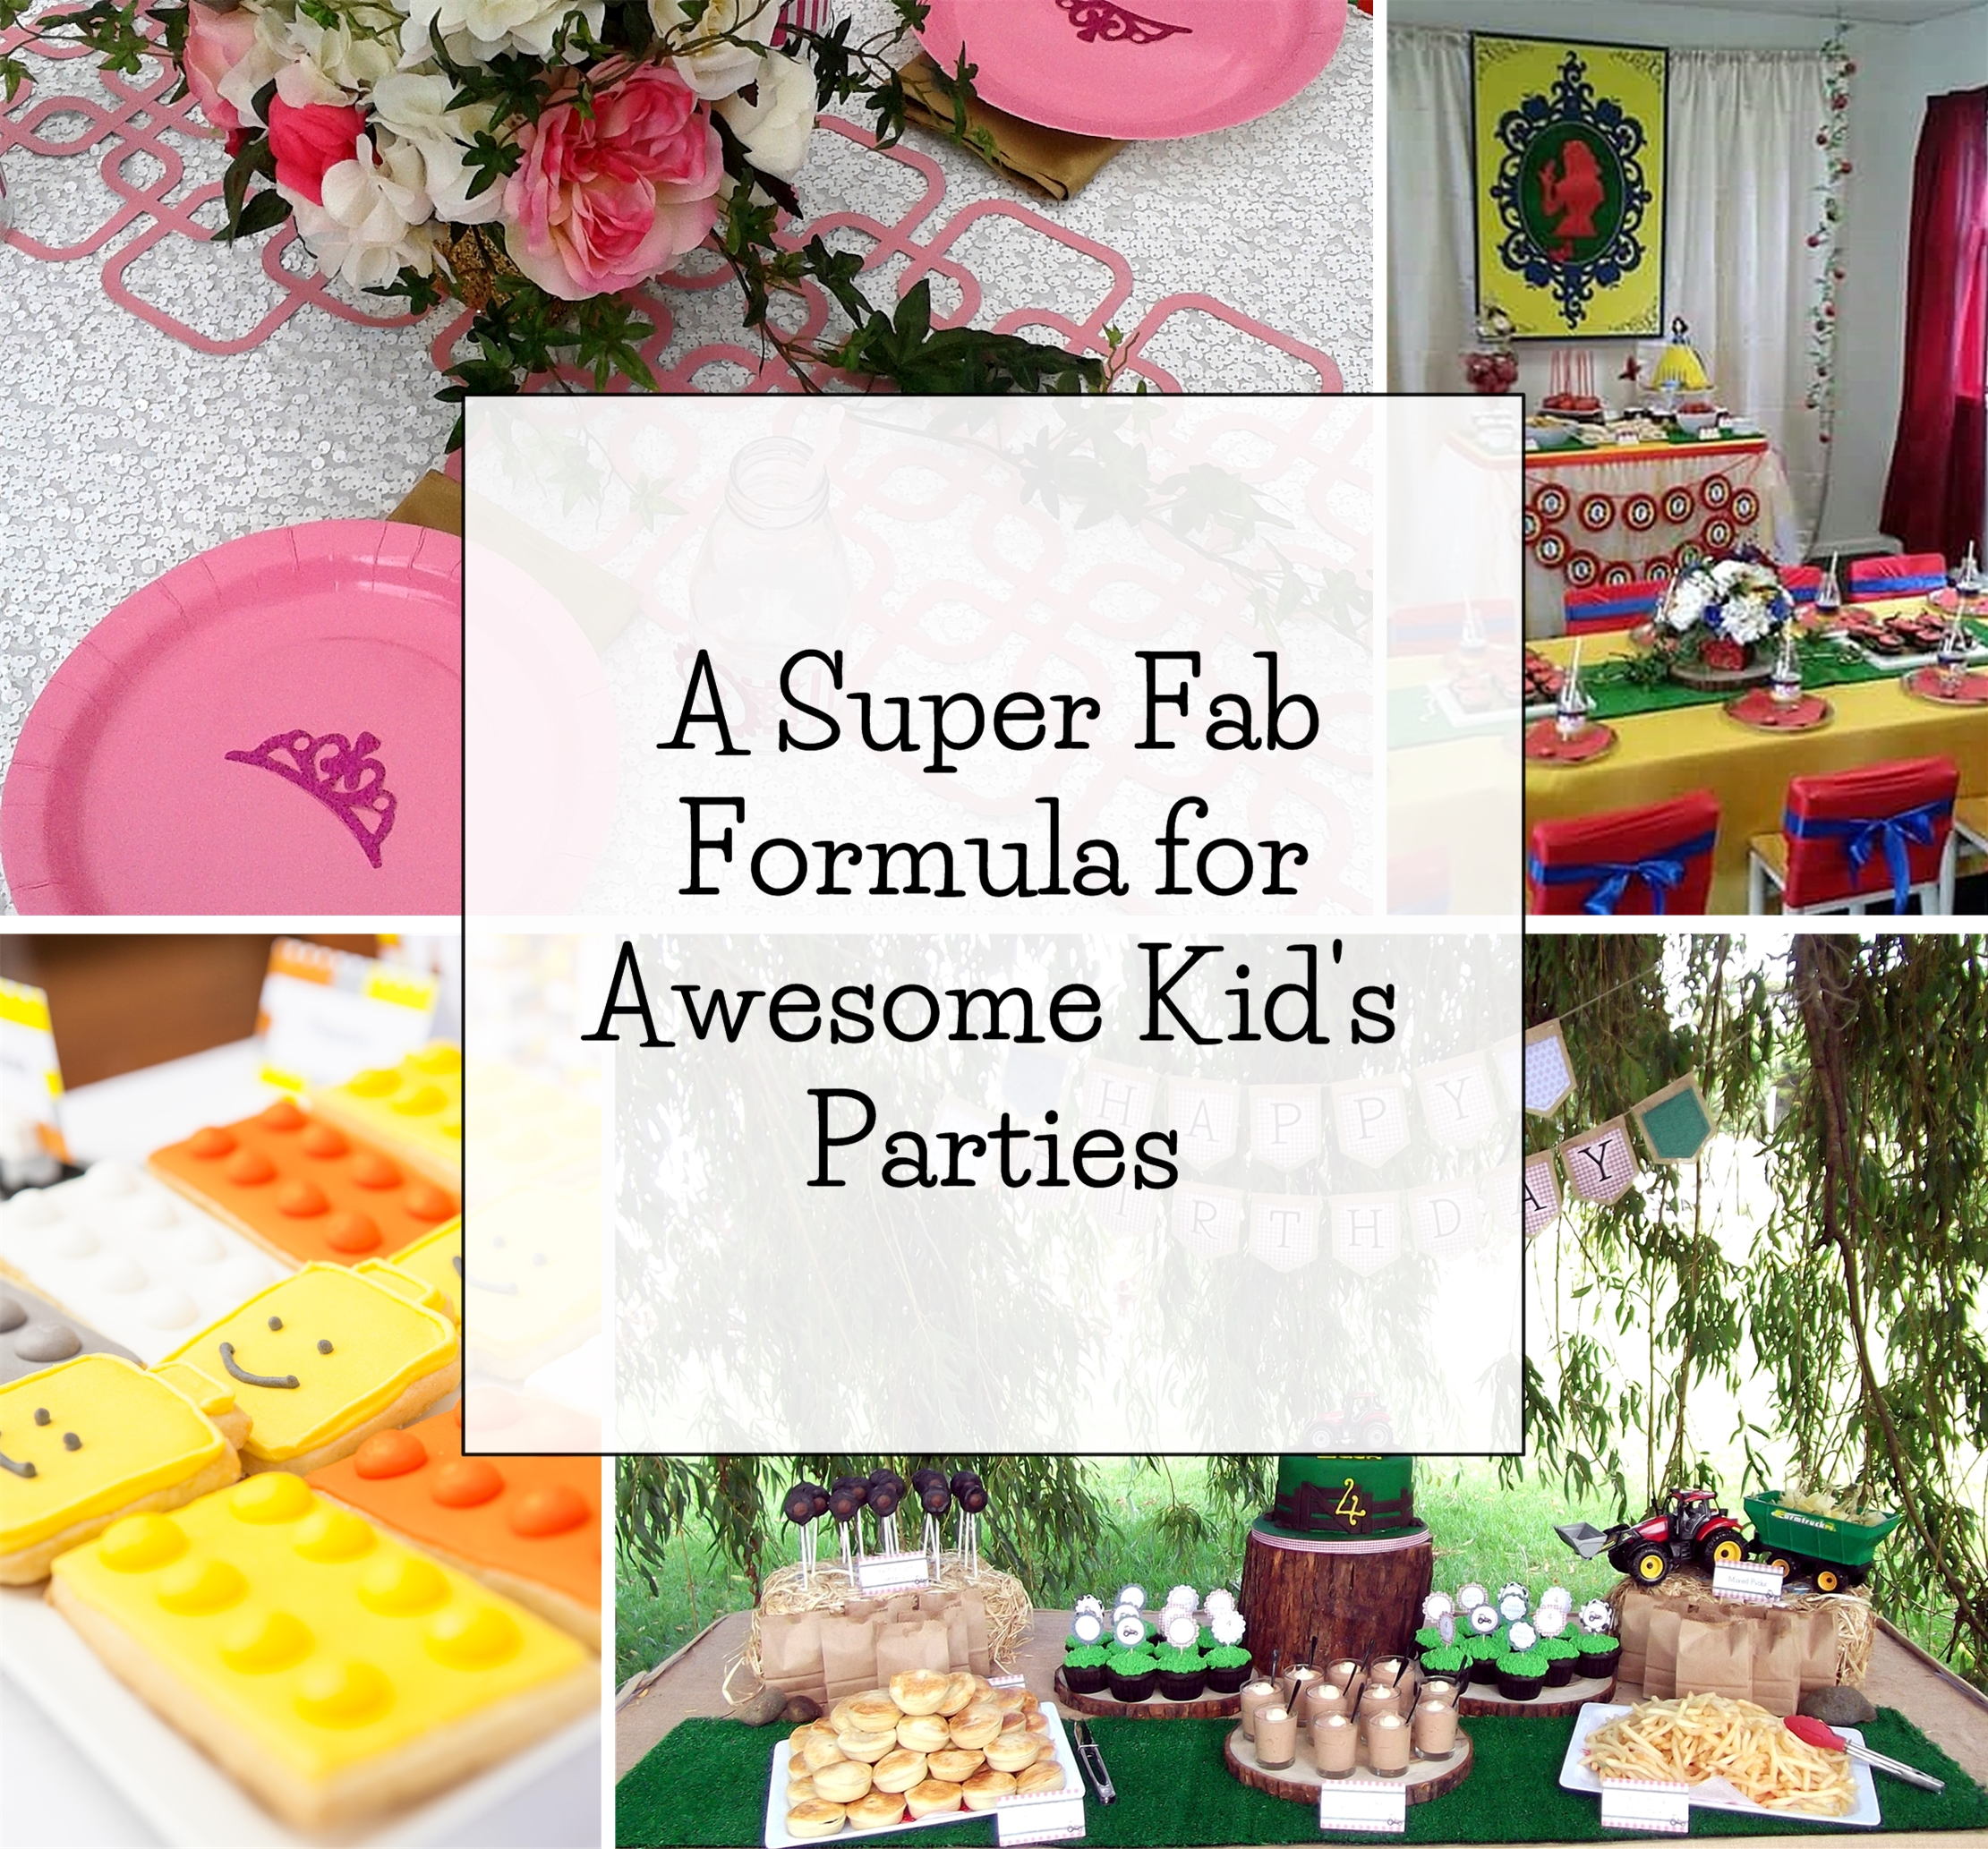 A Super Fab Formula for Awesome Kid's Parties